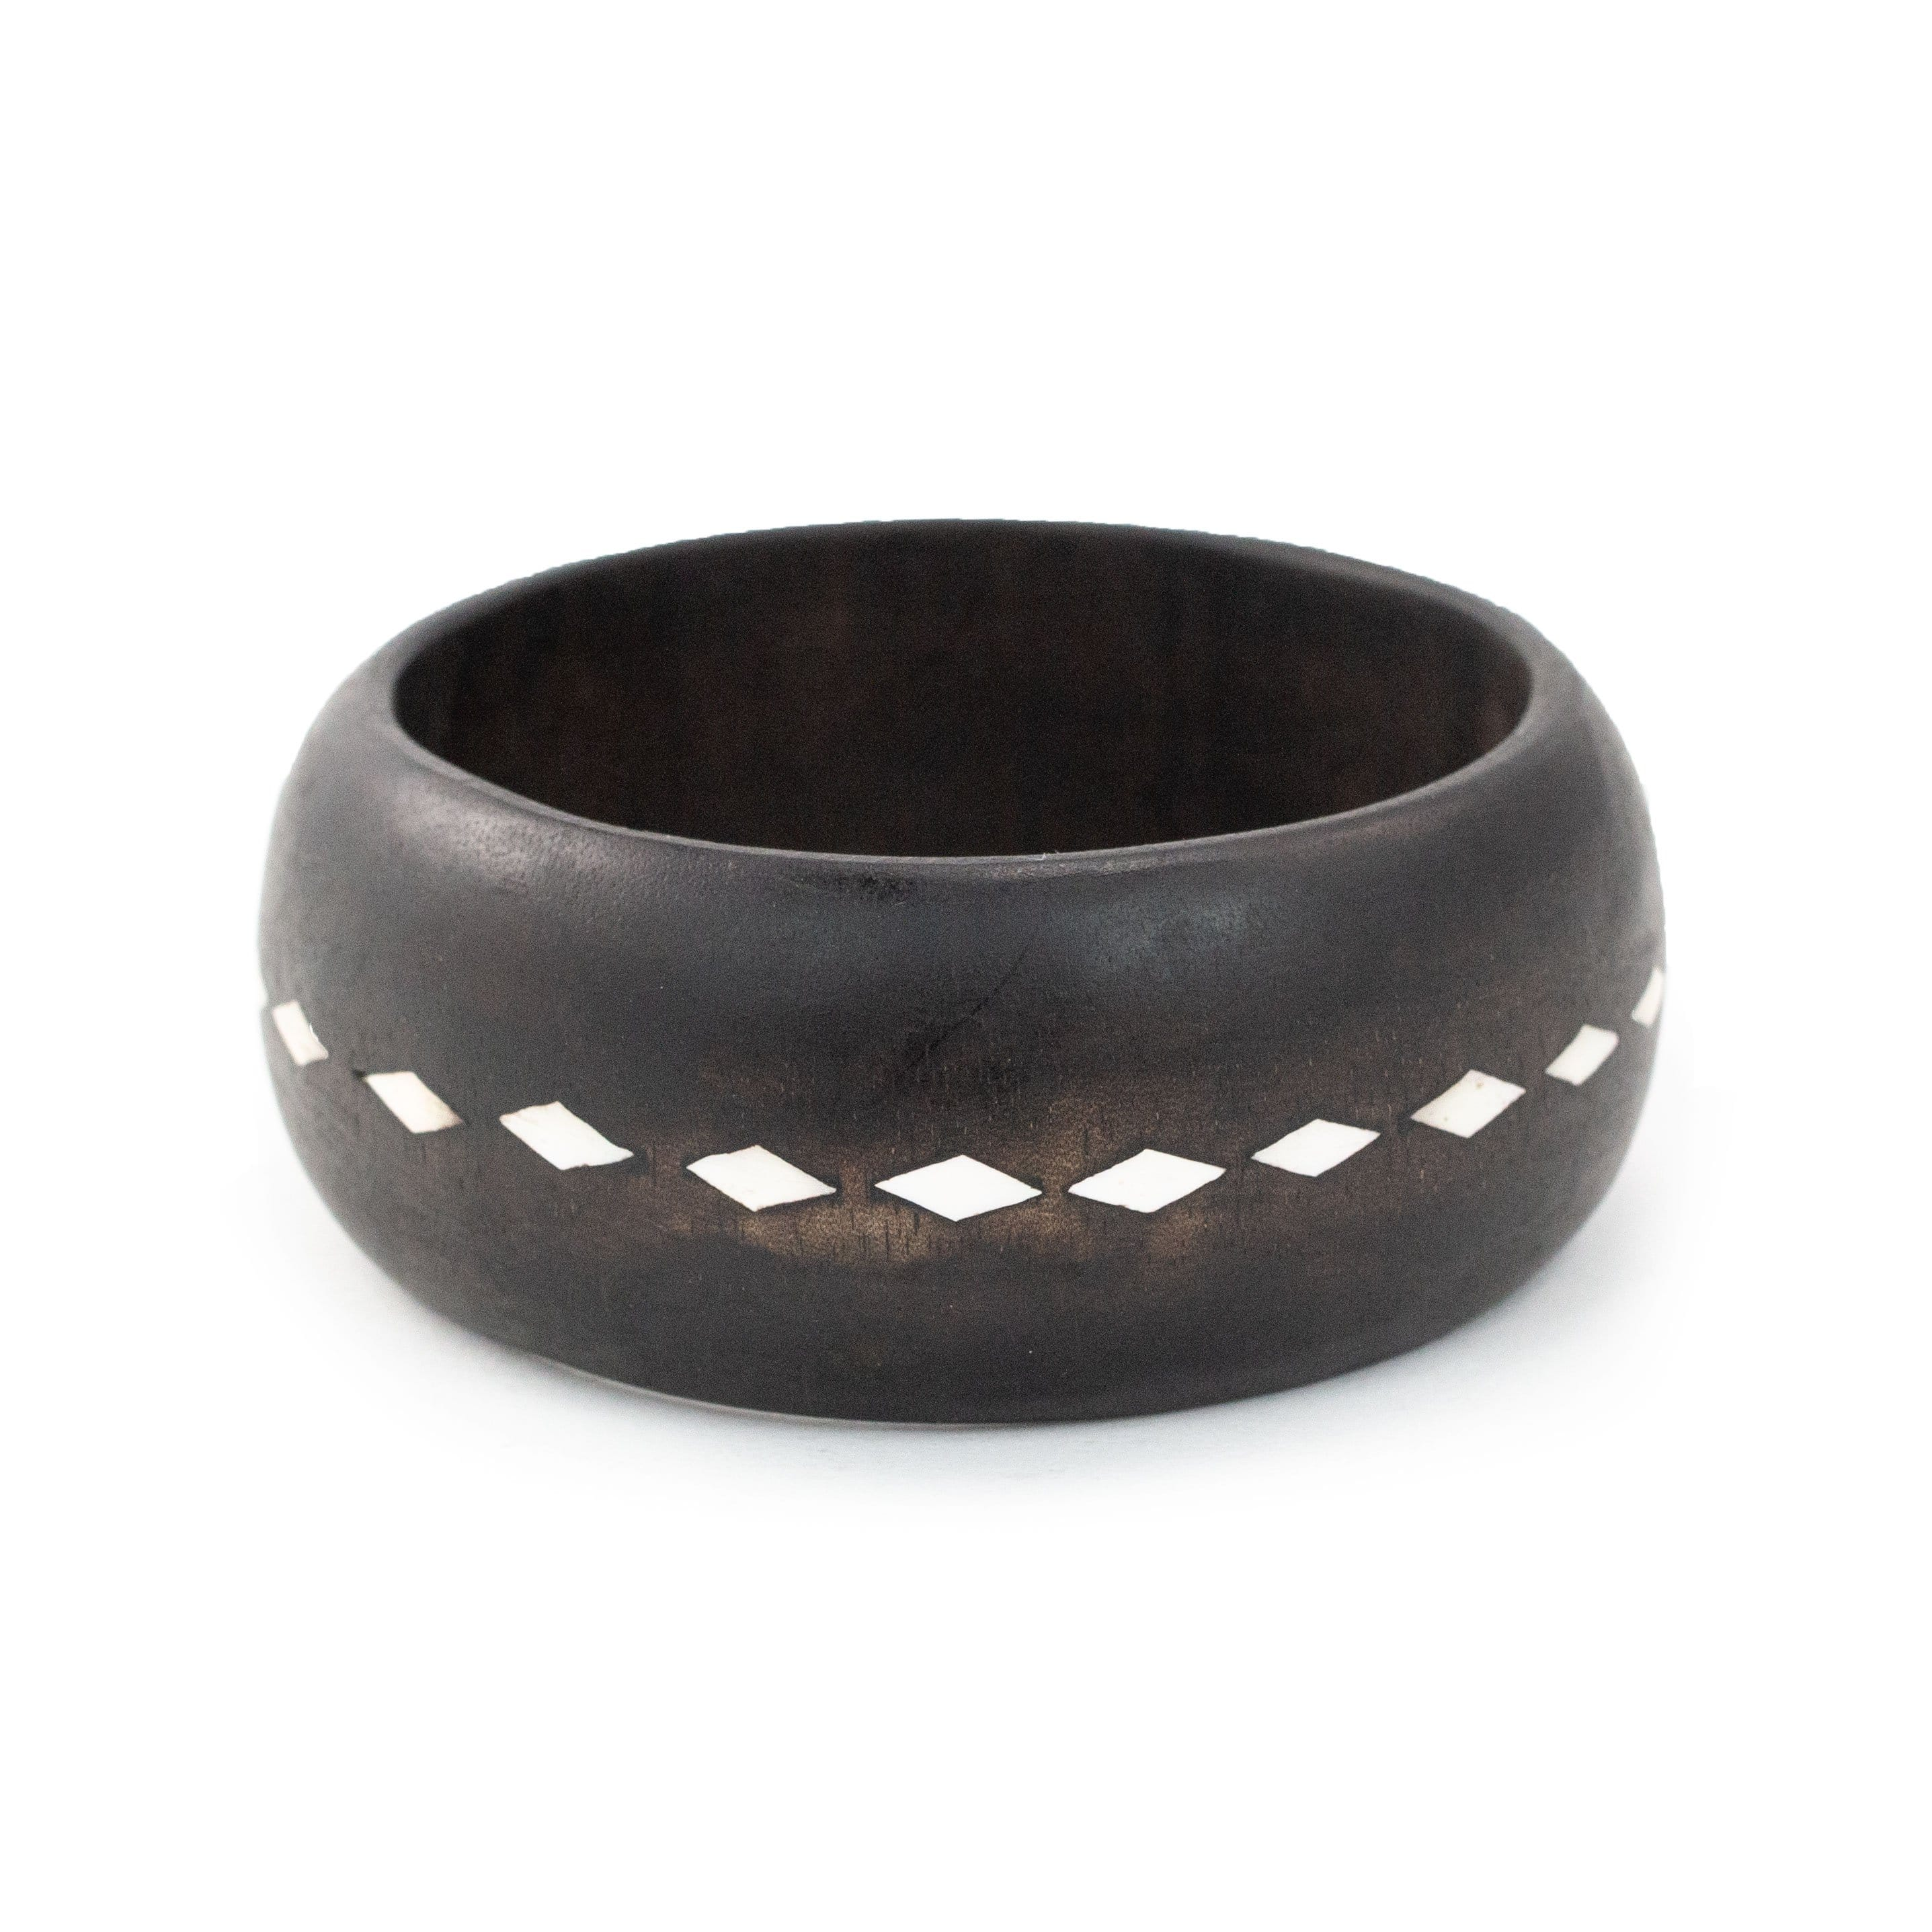 Mindanao Pearl & Wood Bangle - Sun back view made by artisans in the Philippines. Love Is Project creates jobs.